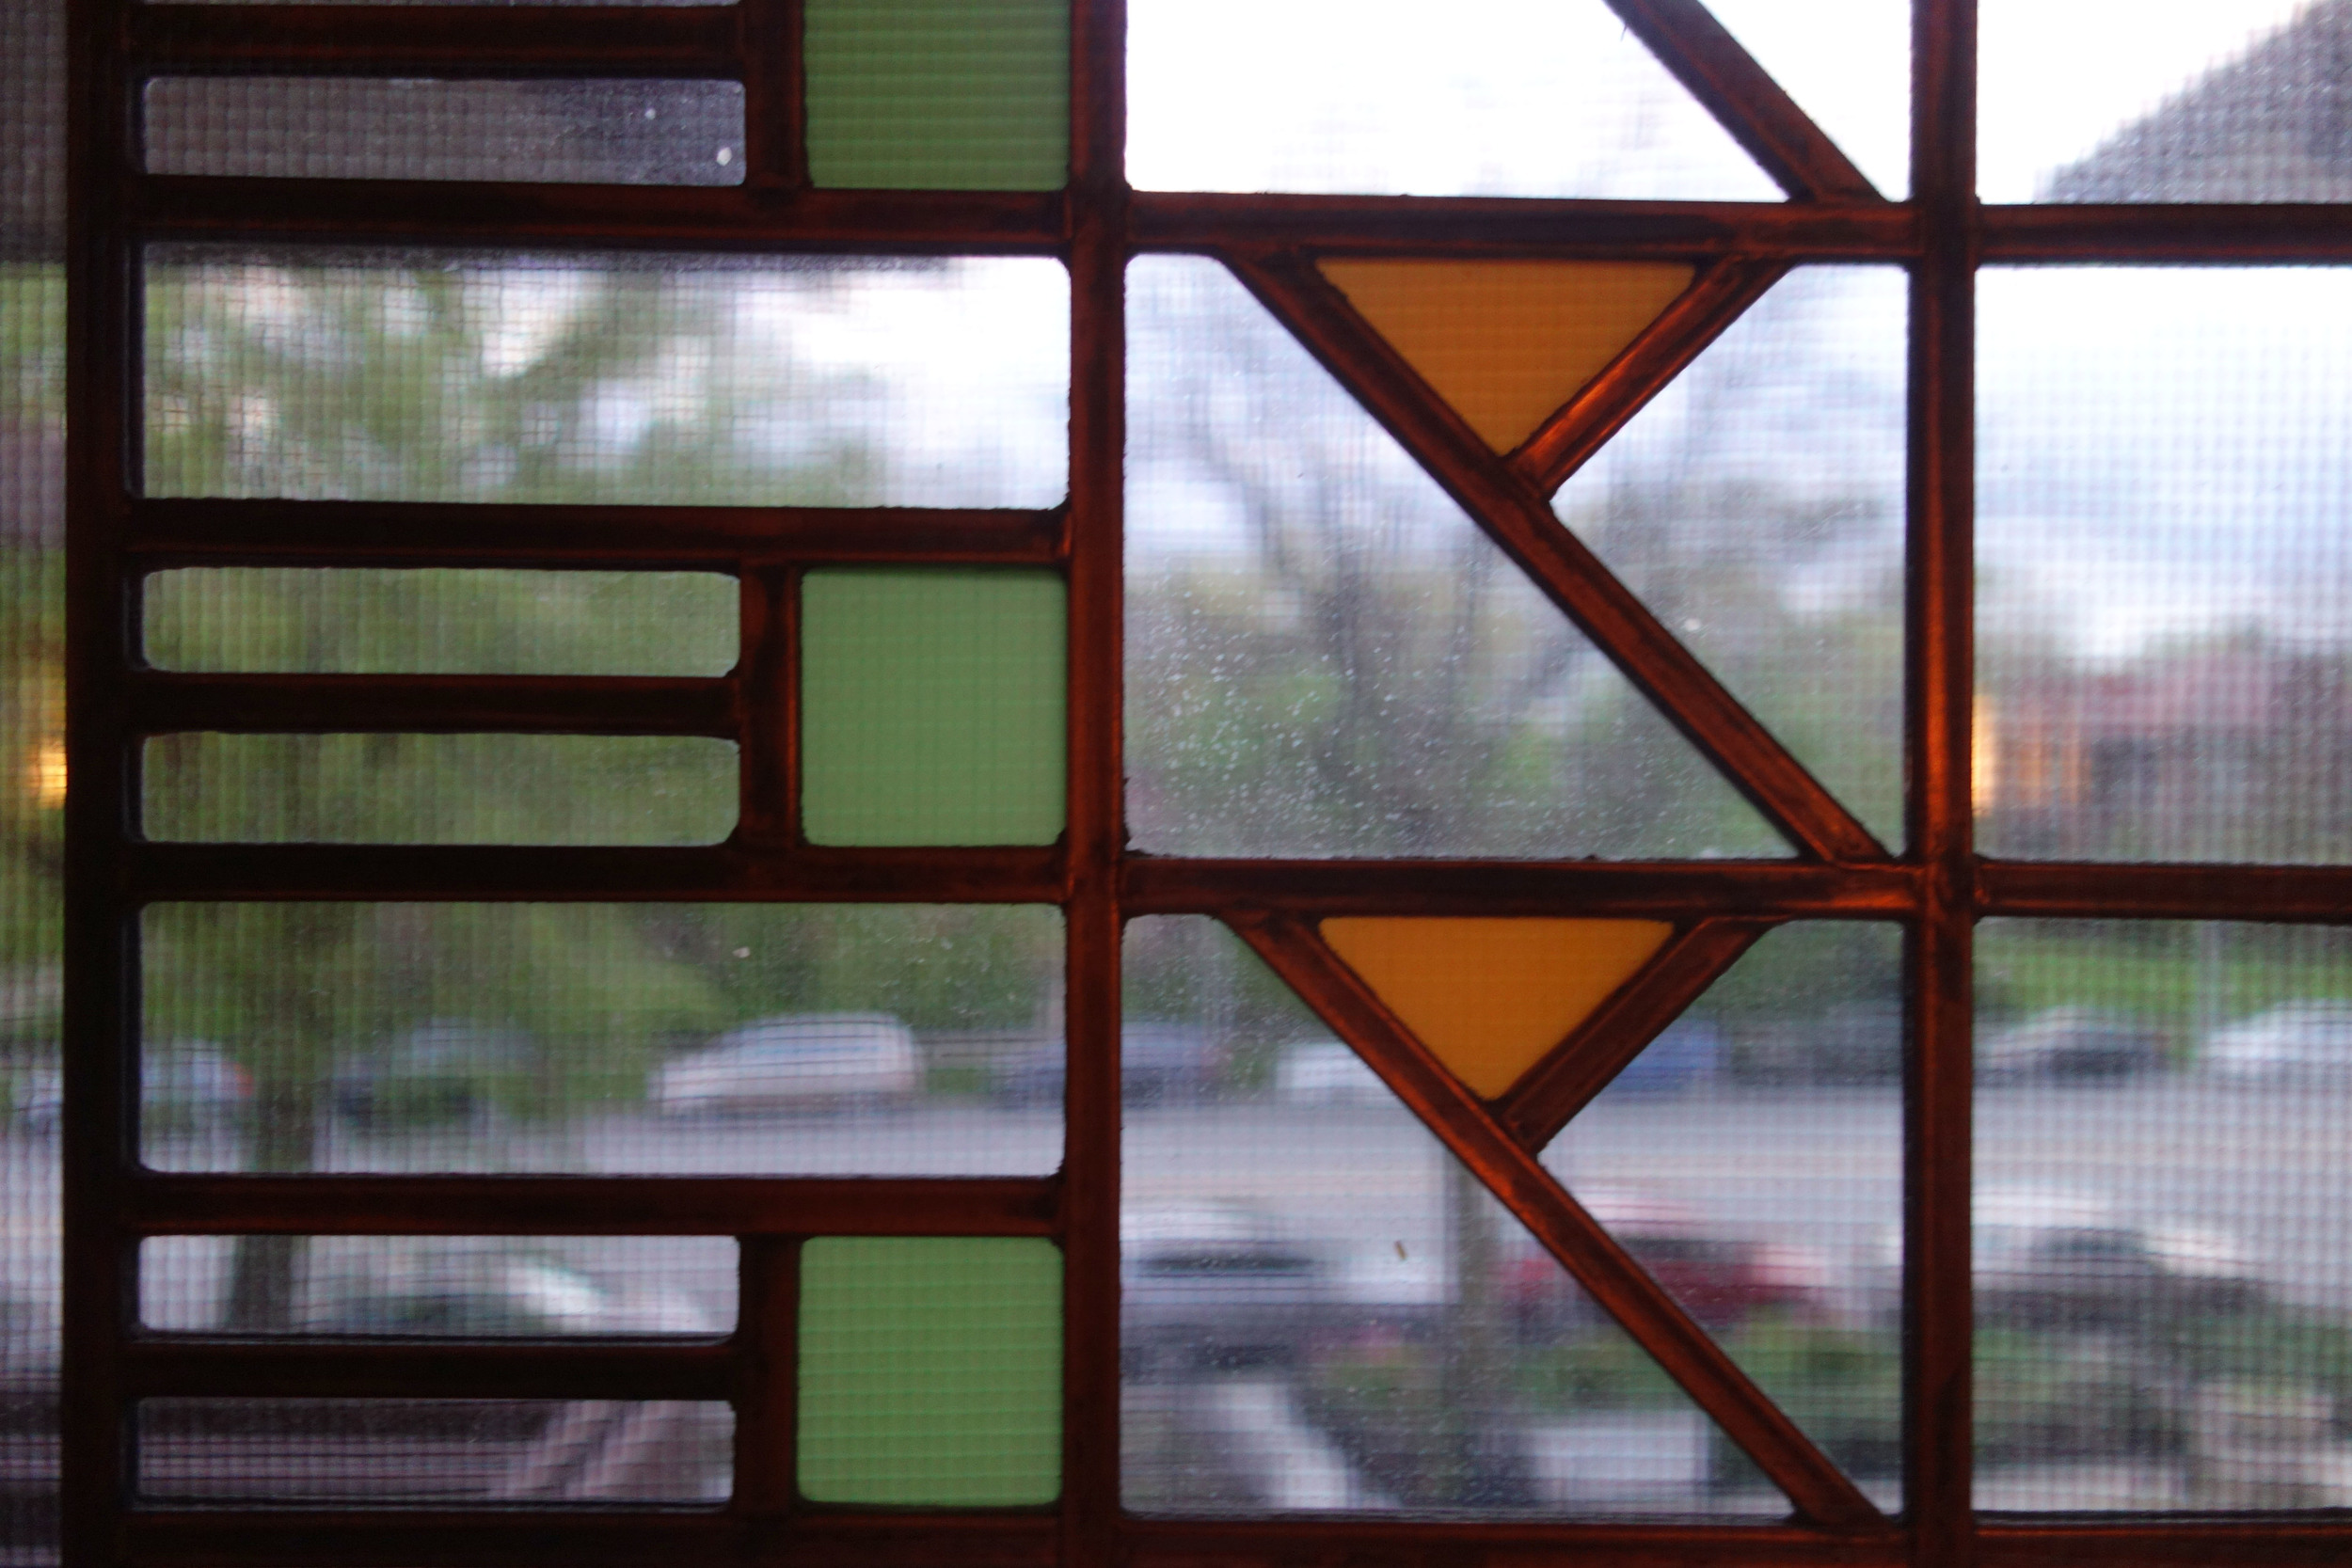 Frank Lloyd Wright window detail.